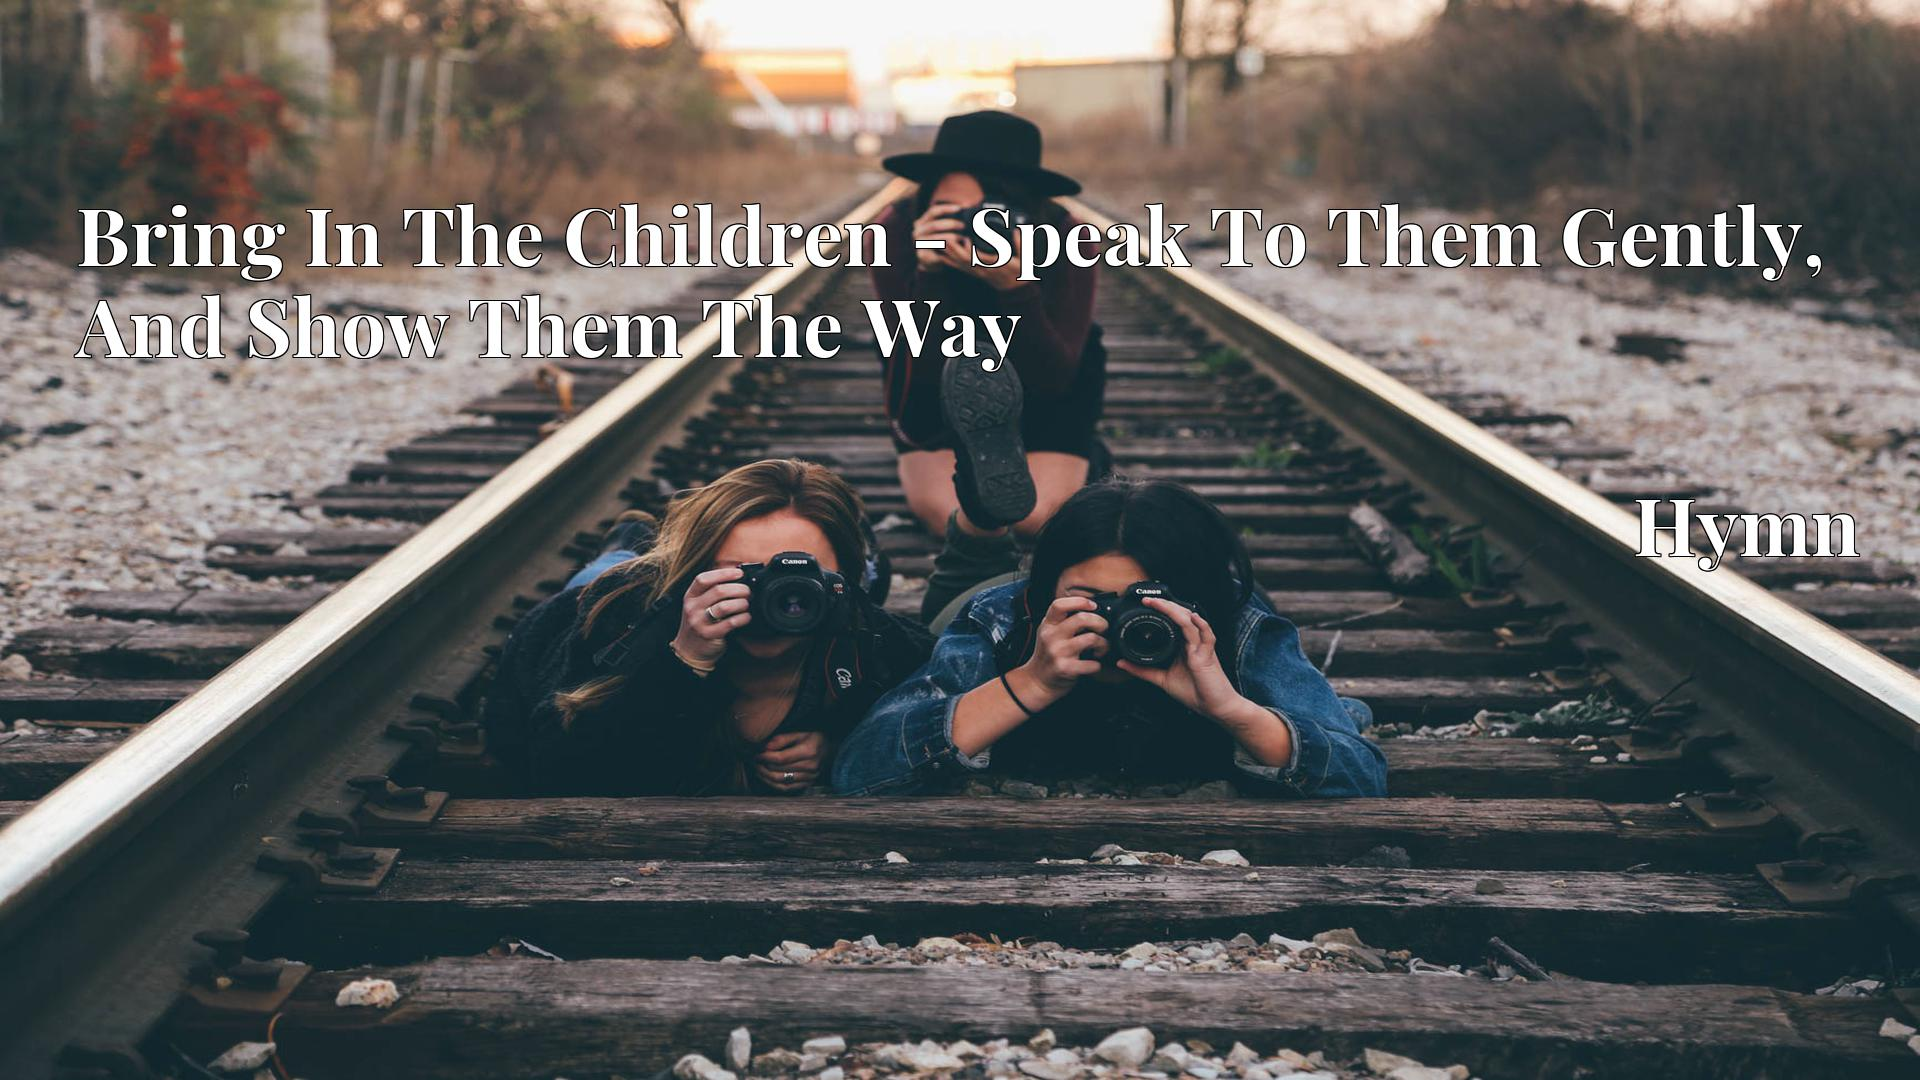 Bring In The Children - Speak To Them Gently, And Show Them The Way Hymn